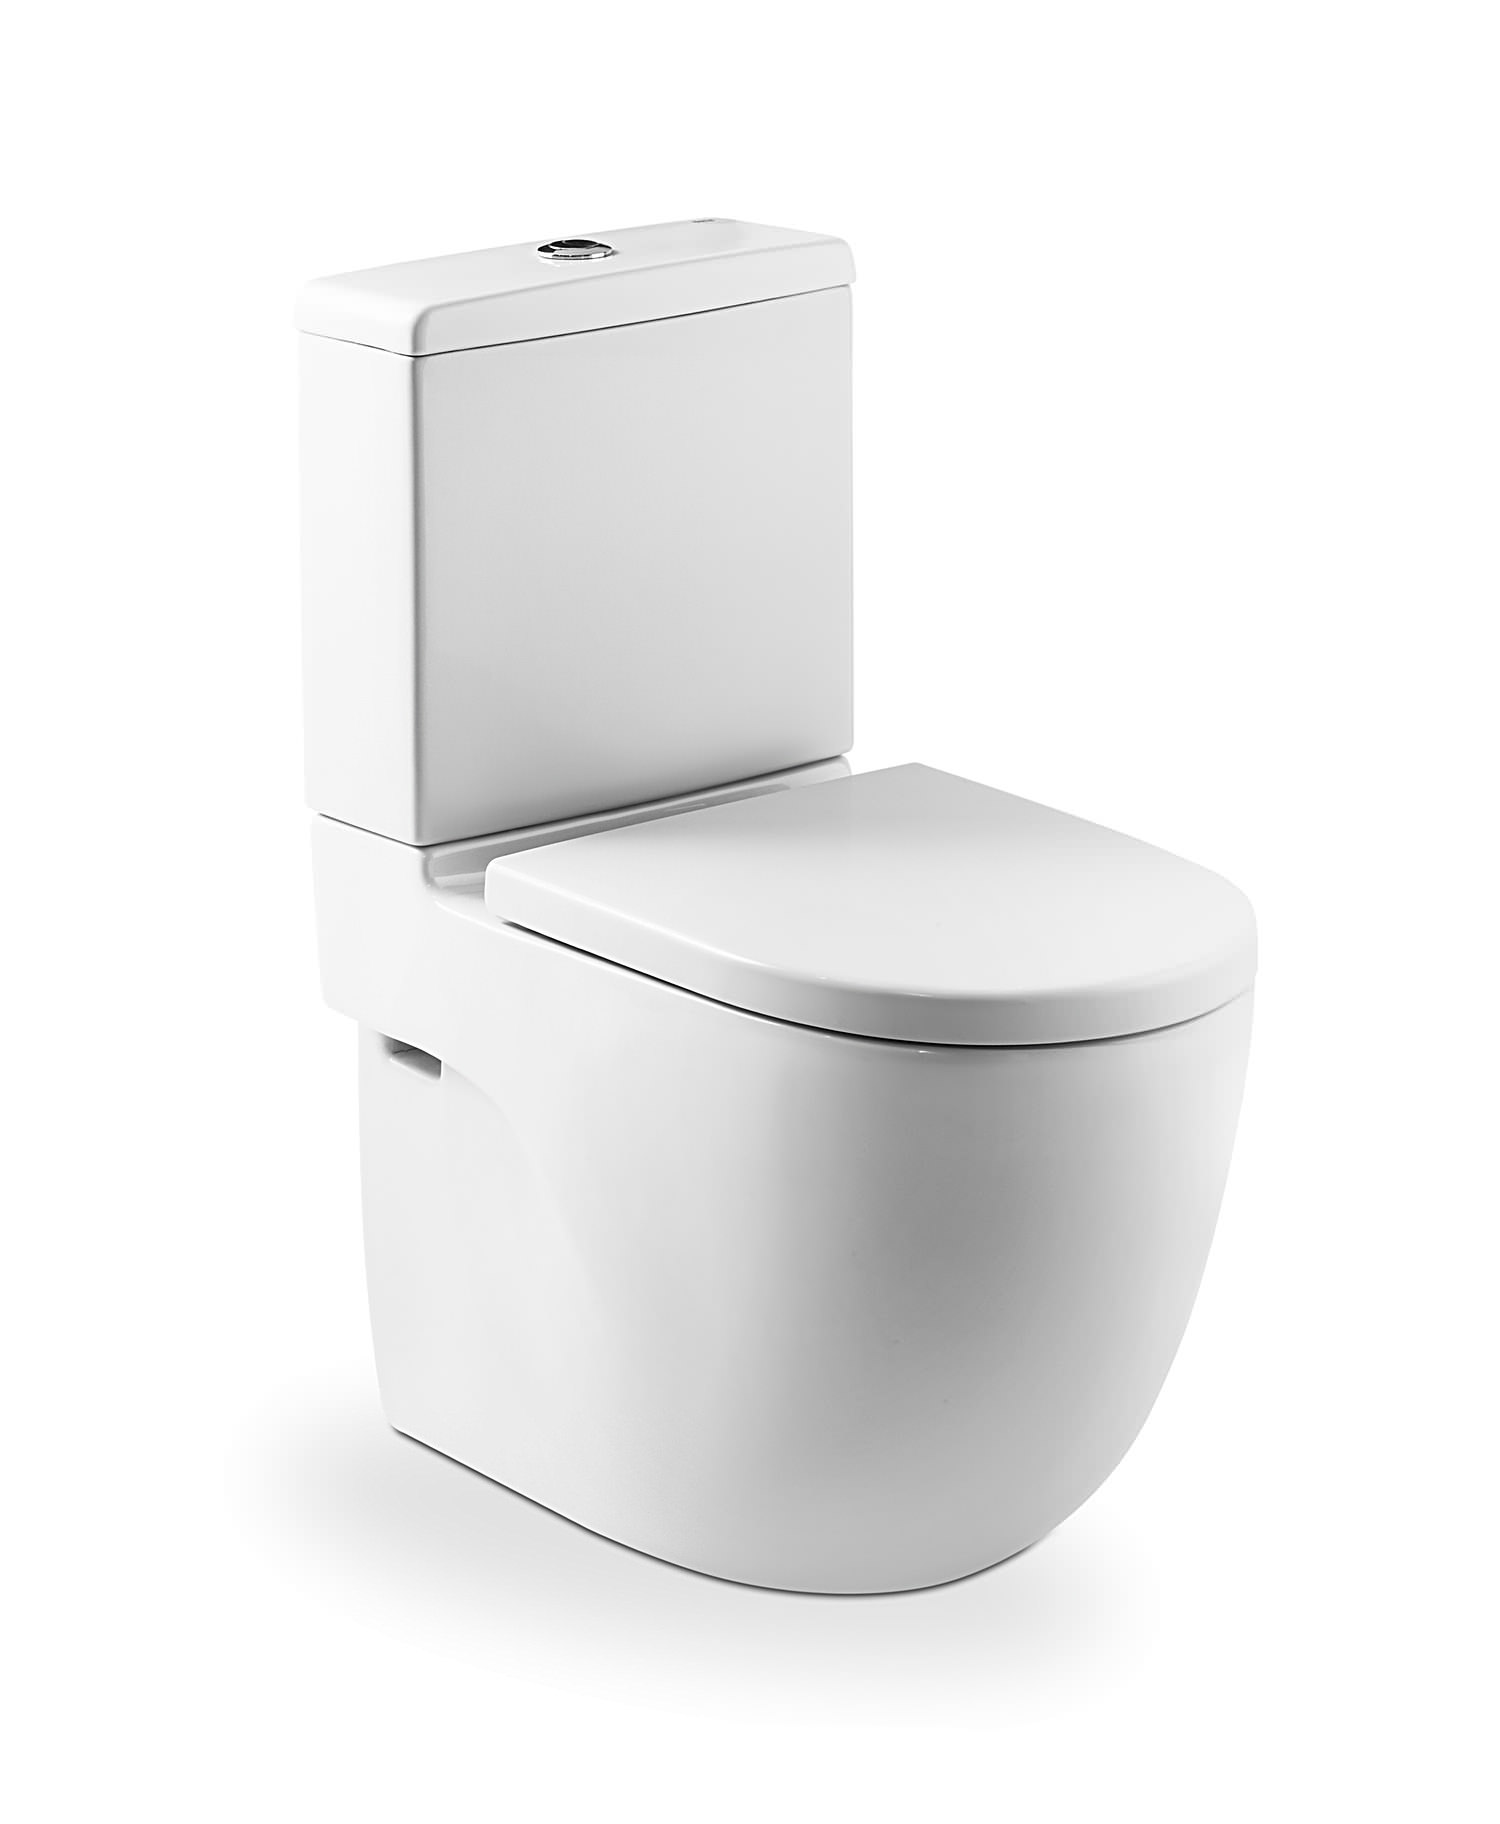 Roca meridian n compact back to wall wc set 600mm 342248000 for Aparatos sanitarios roca